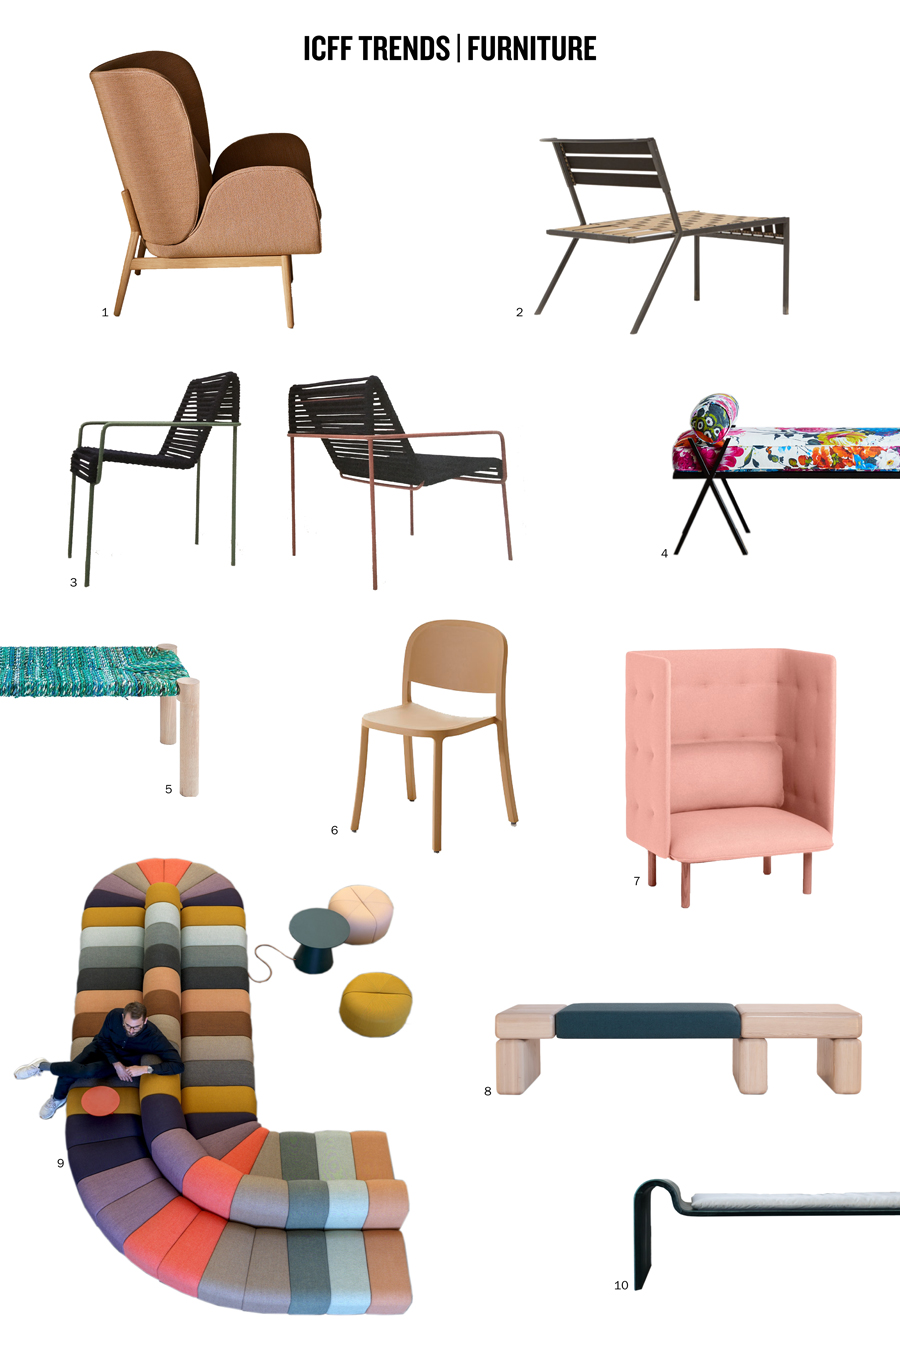 46 ICFF Interior Furniture Favorites